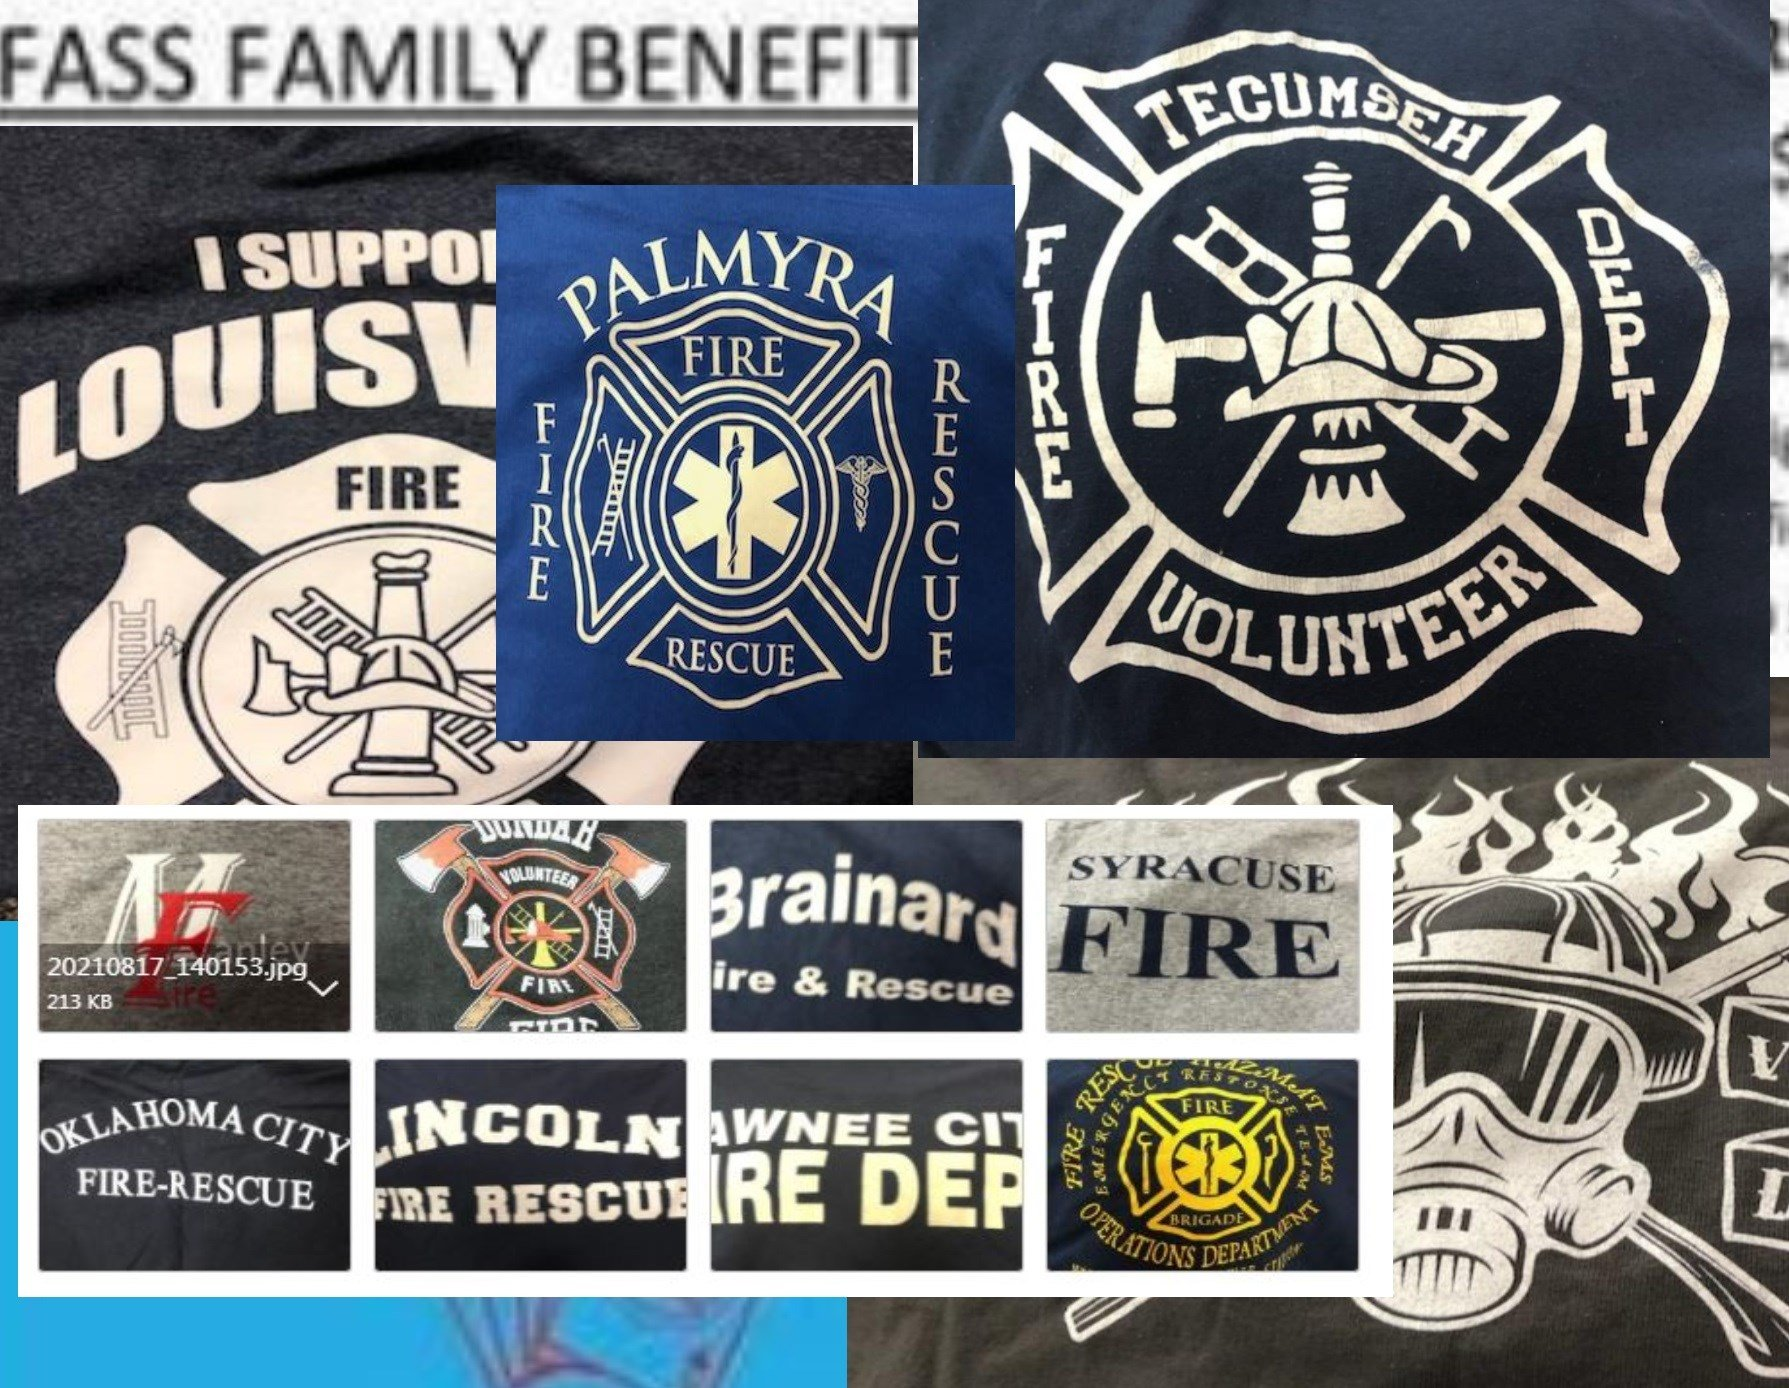 Fire departments around the country contribute to quilt for Eric Fass benefit